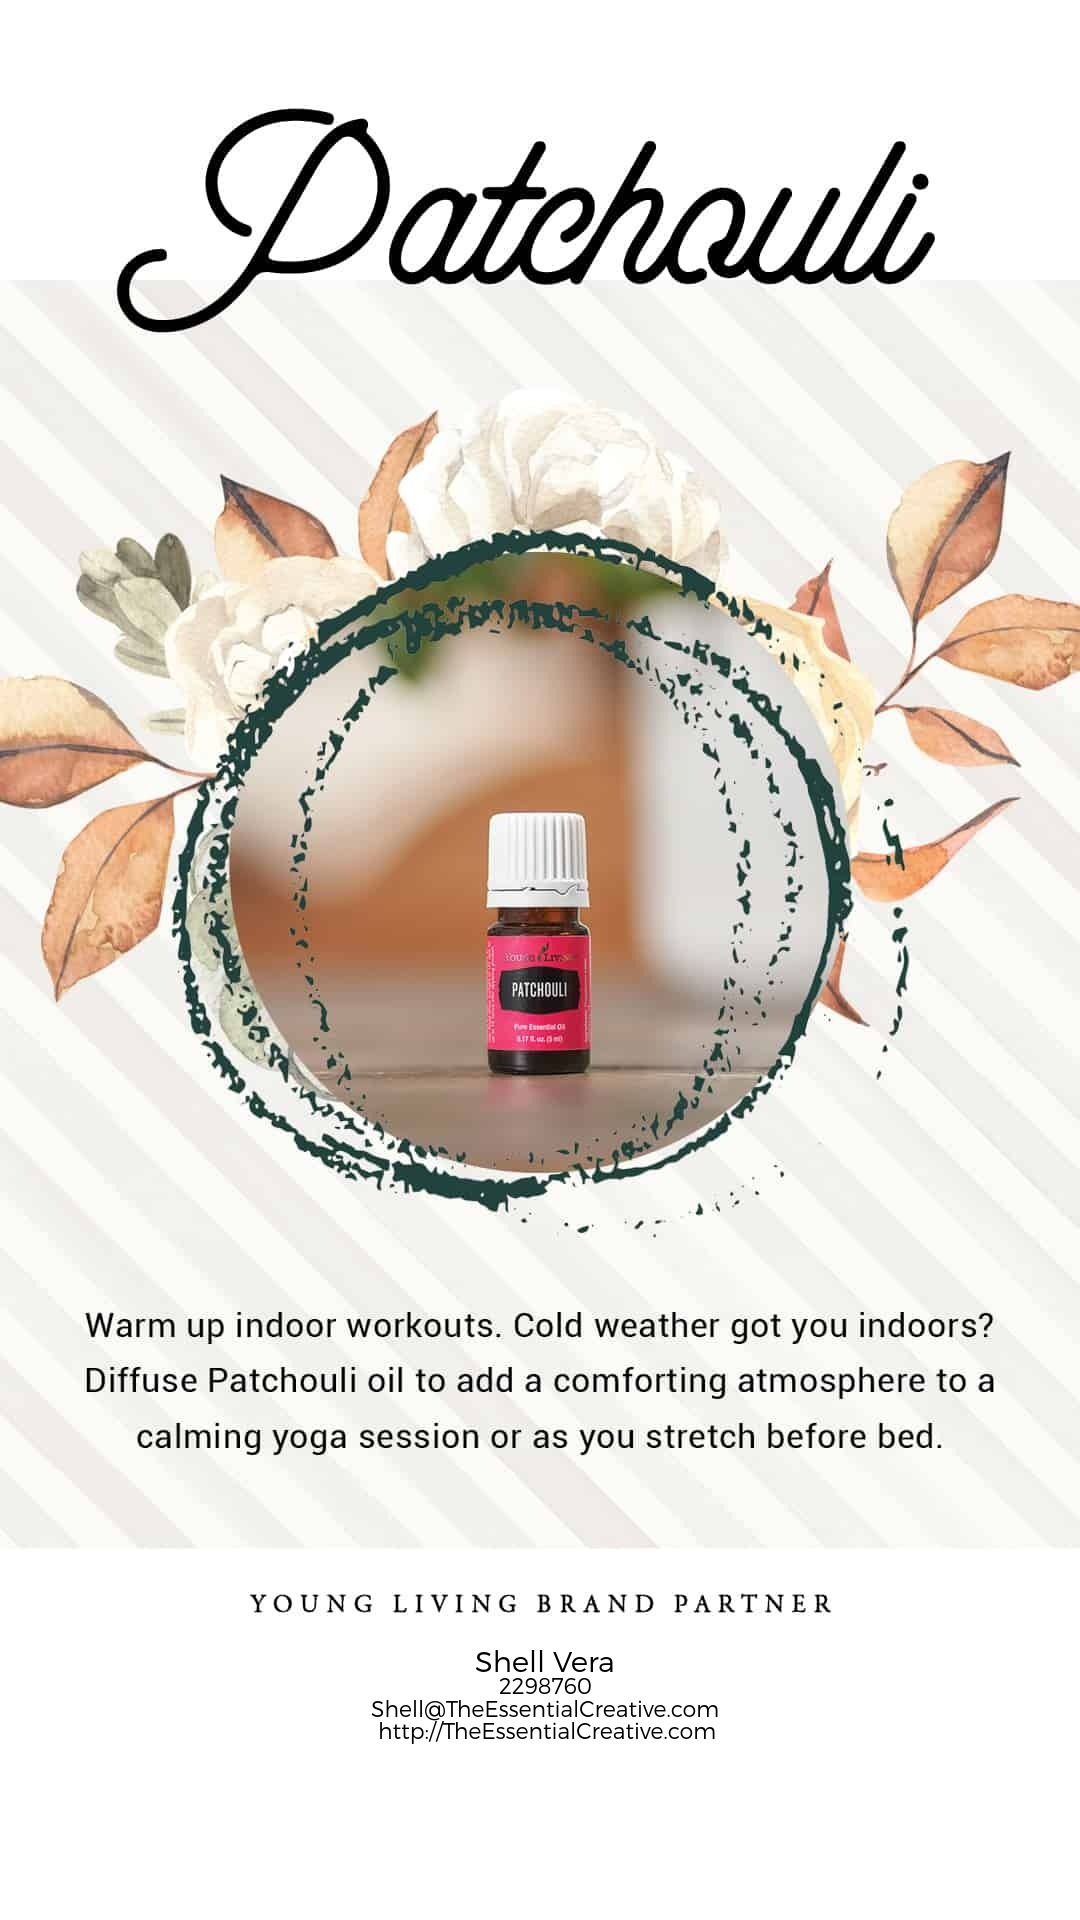 • Warm up indoor workouts. Cold weather got you indoors? Diffuse Patchouli oil to add a comforting atmosphere to a calming yoga session or as you stretch before bed.